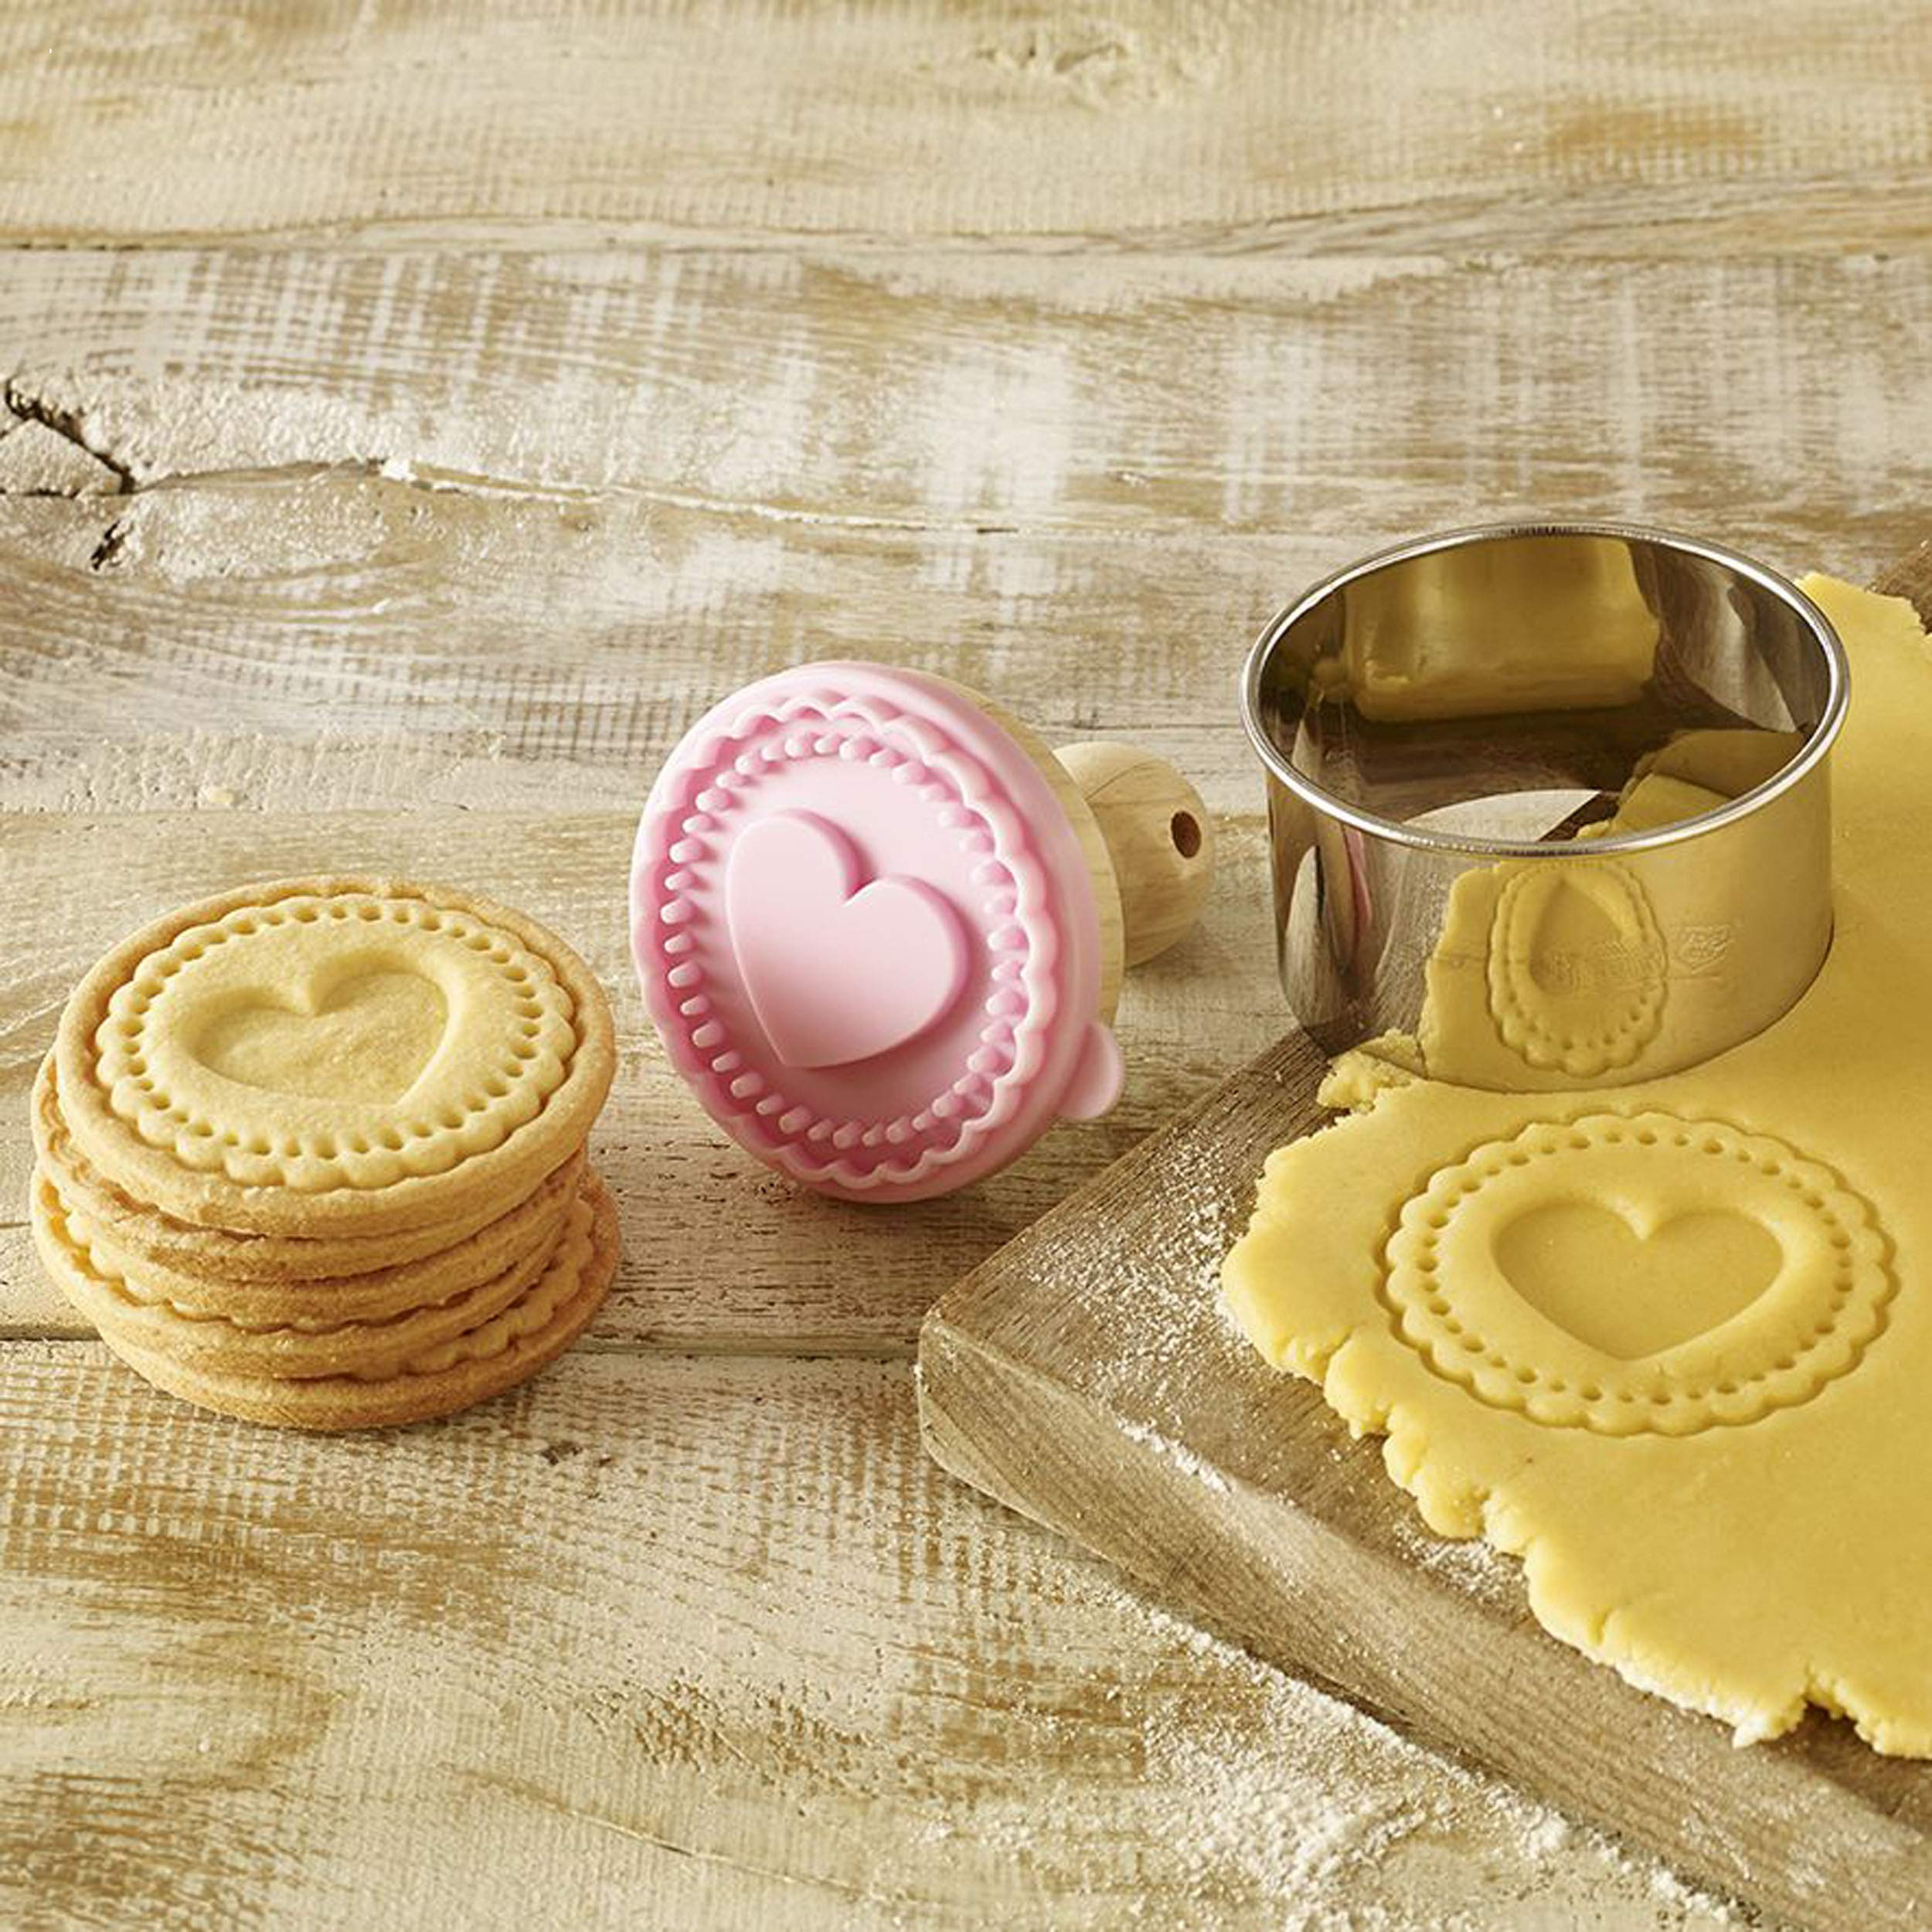 Heart Cookie Stamp - Wooden Handle with Silicone by rbv birkmann (Image #3)